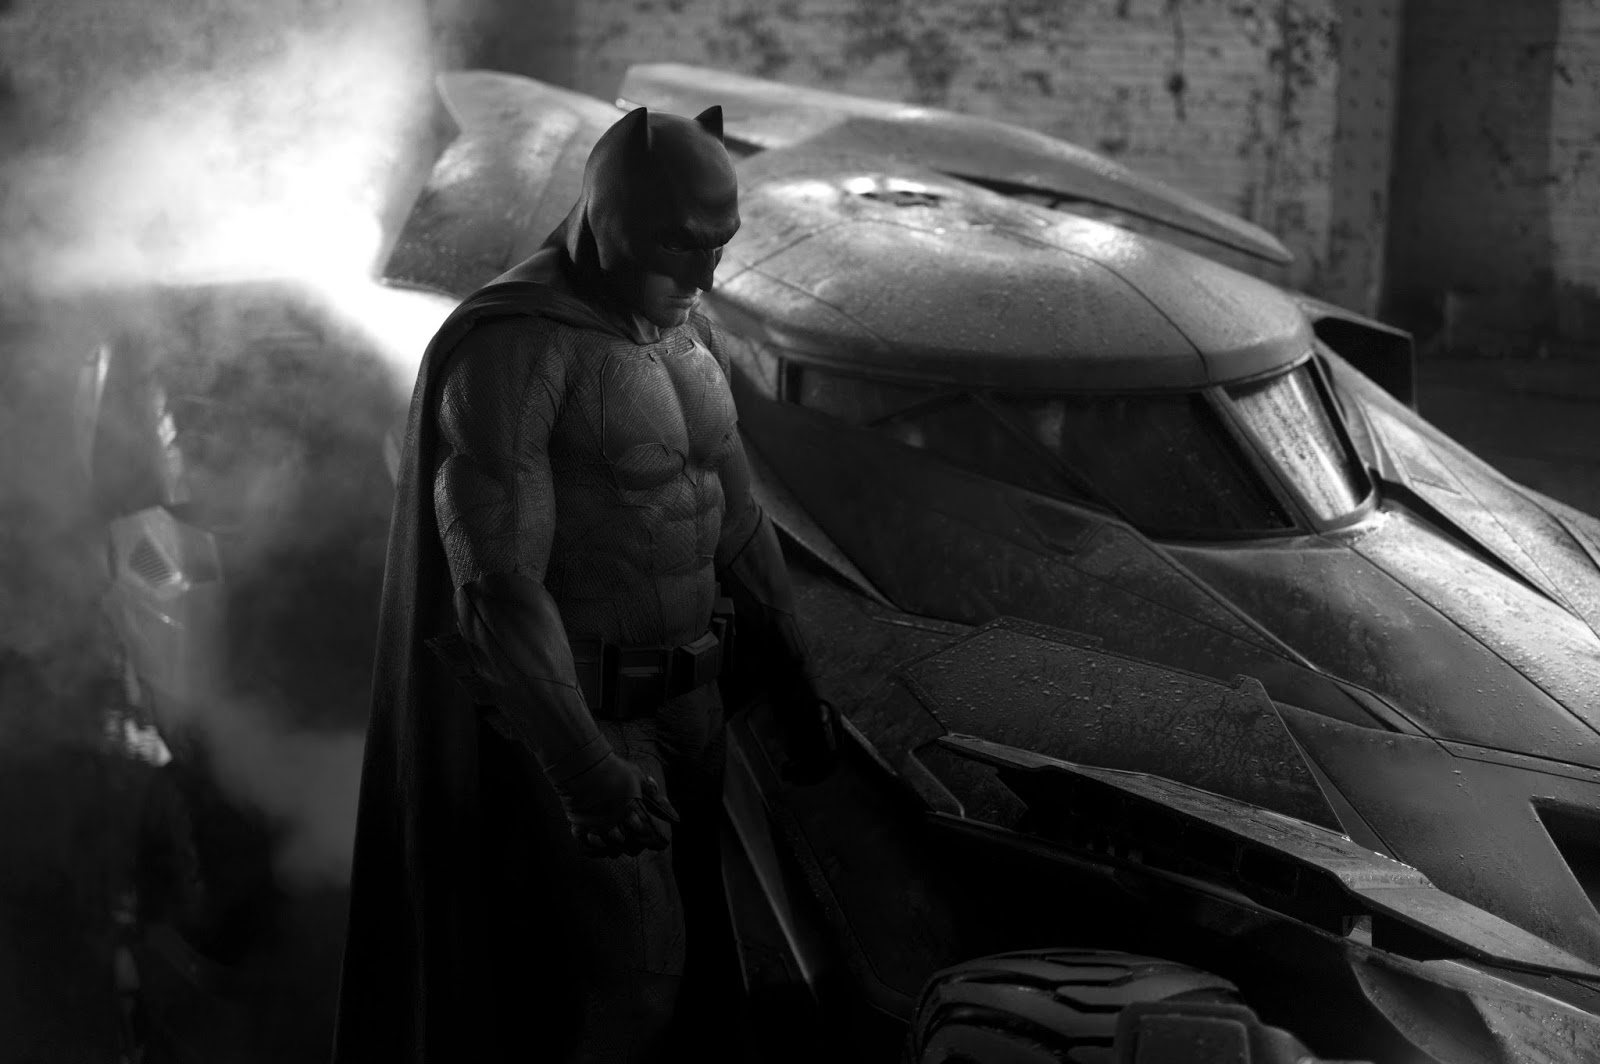 'Dawn of the Planet of the Apes' Director Will Helm 'The Batman'